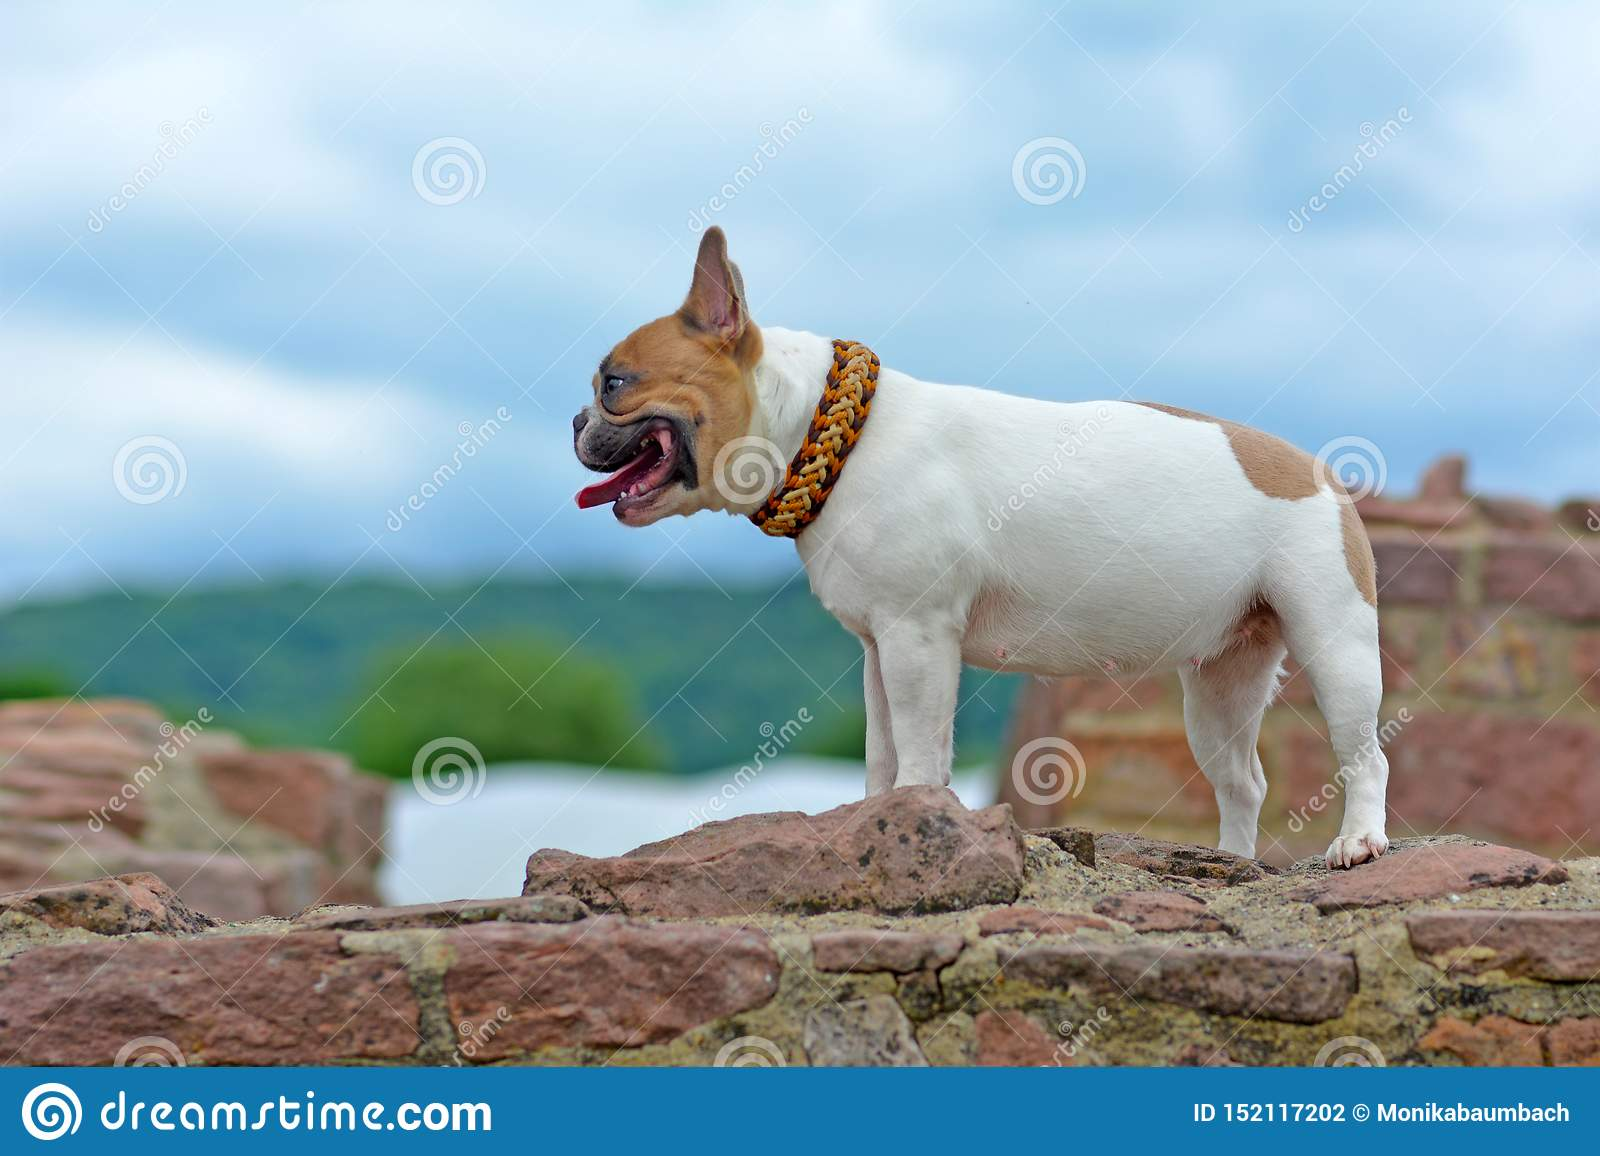 Red And White Pied French Bulldog Dog With Paracord Collar Standing On Old Ruins Wall Looking To The Side Stock Photo Image Of Animal Portrait 152117202